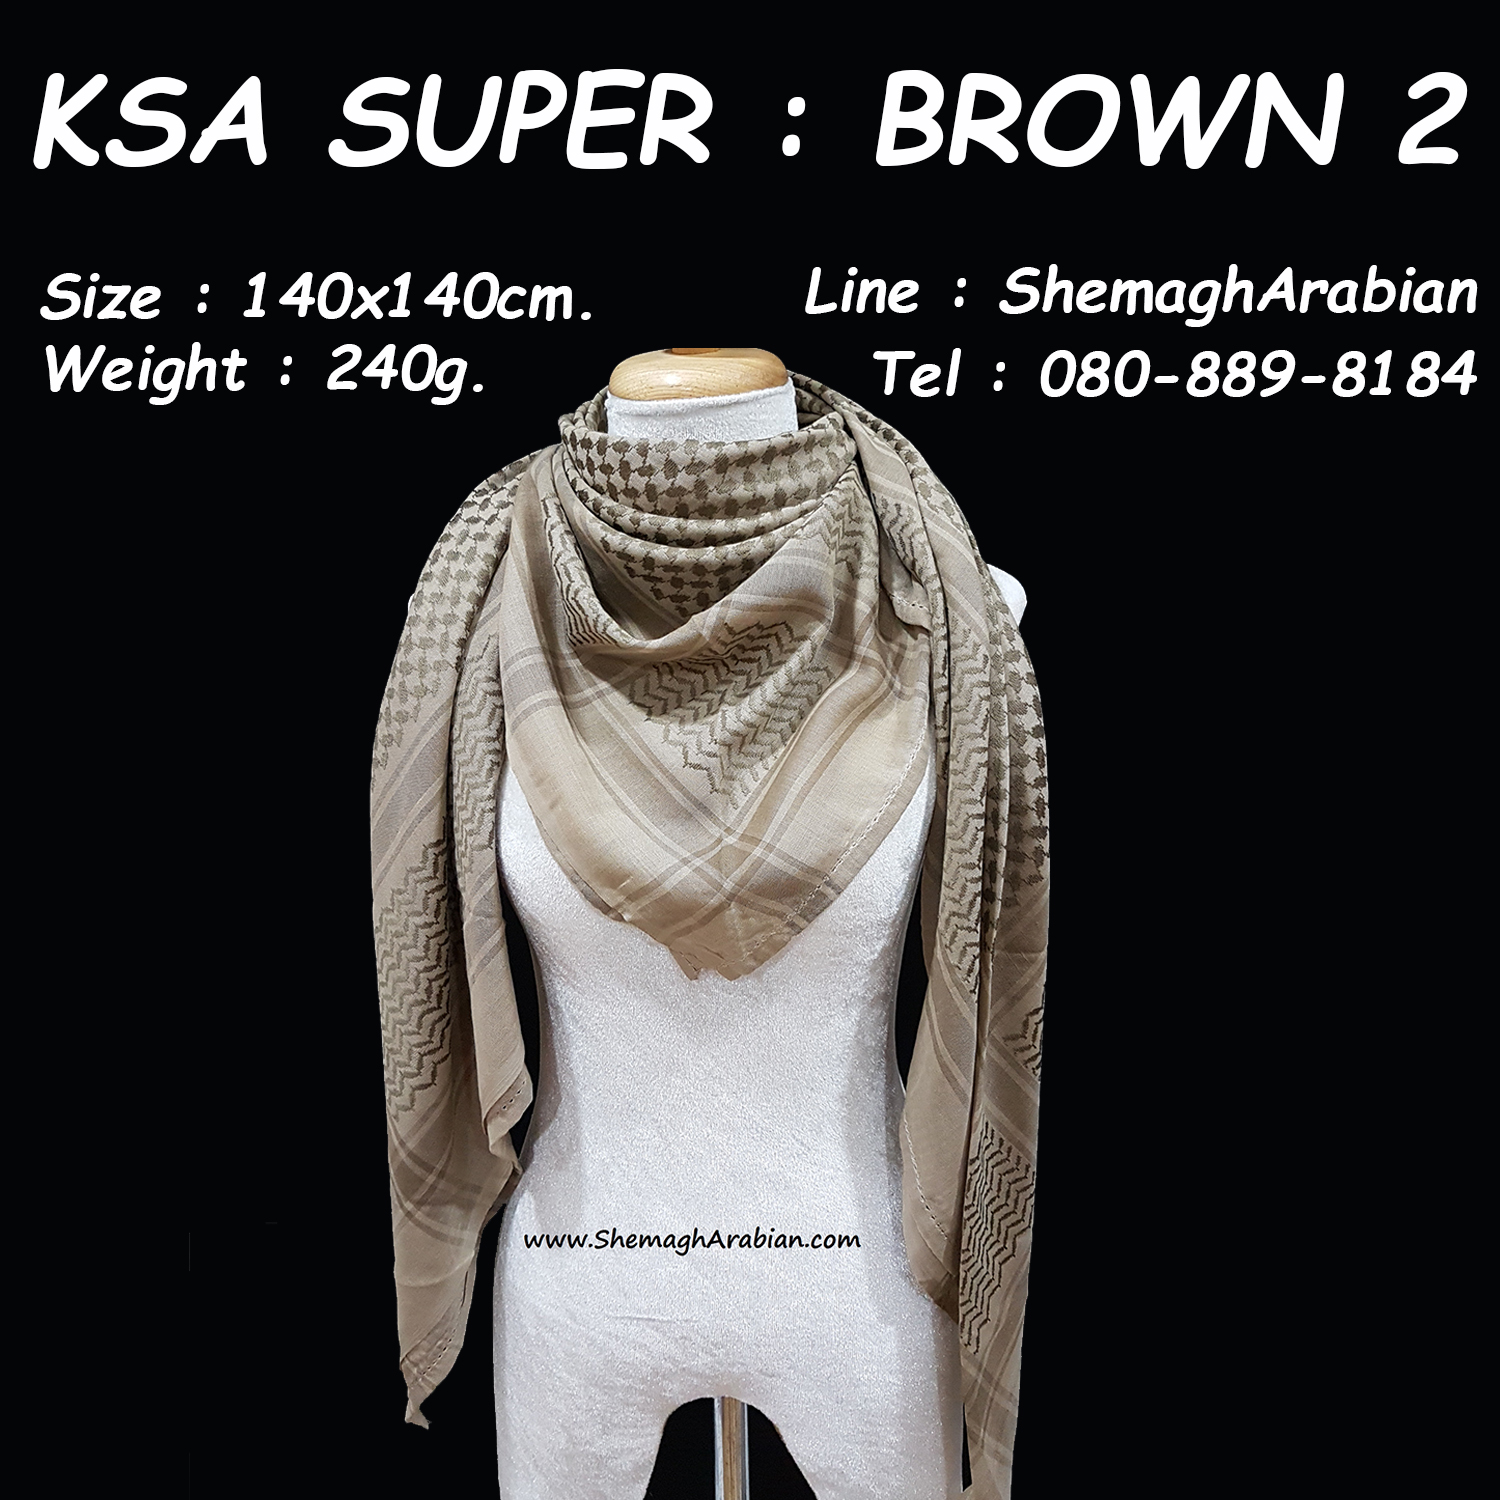 KSA SUPER : BROWN 2